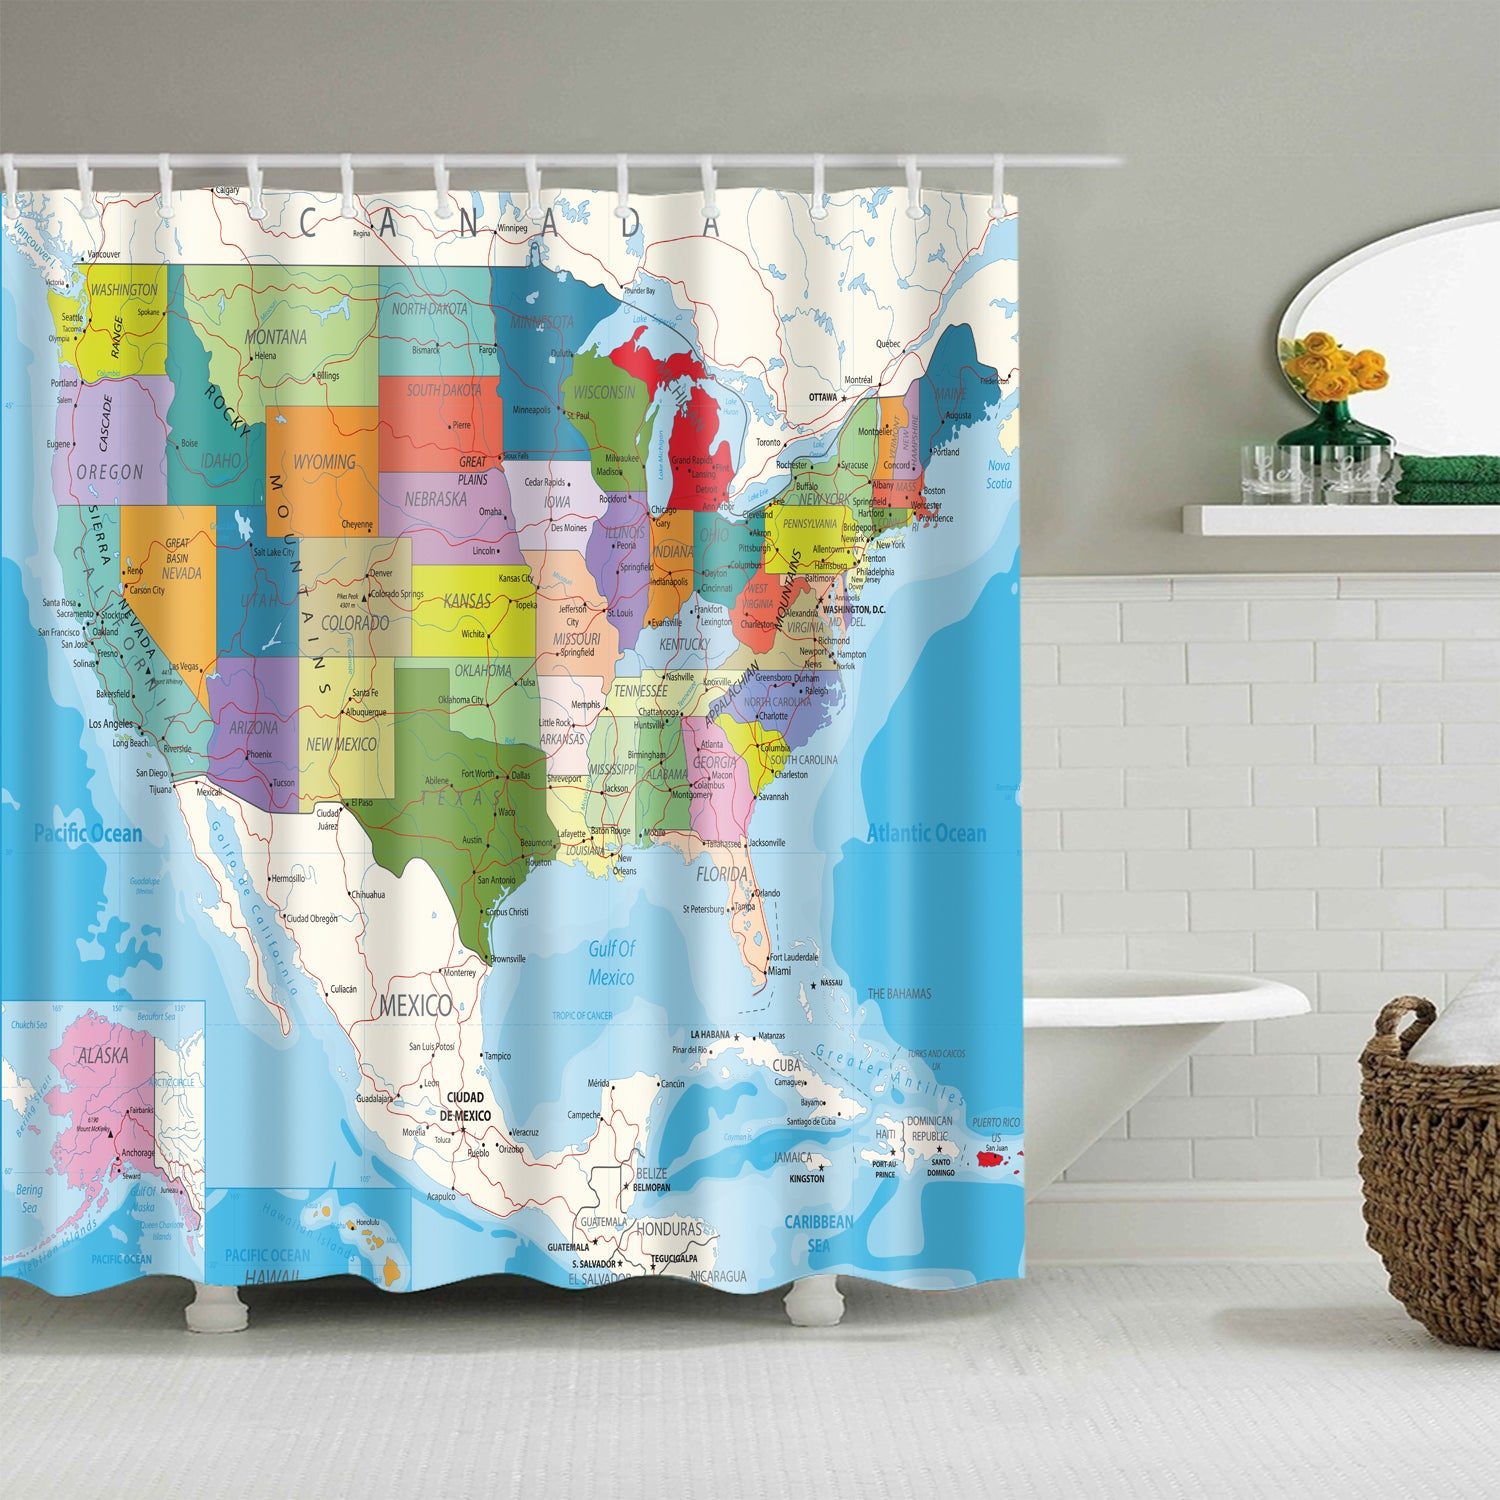 Us Map Shower Curtain Colorful American United States Map Shower Curtain Bathroom Decor